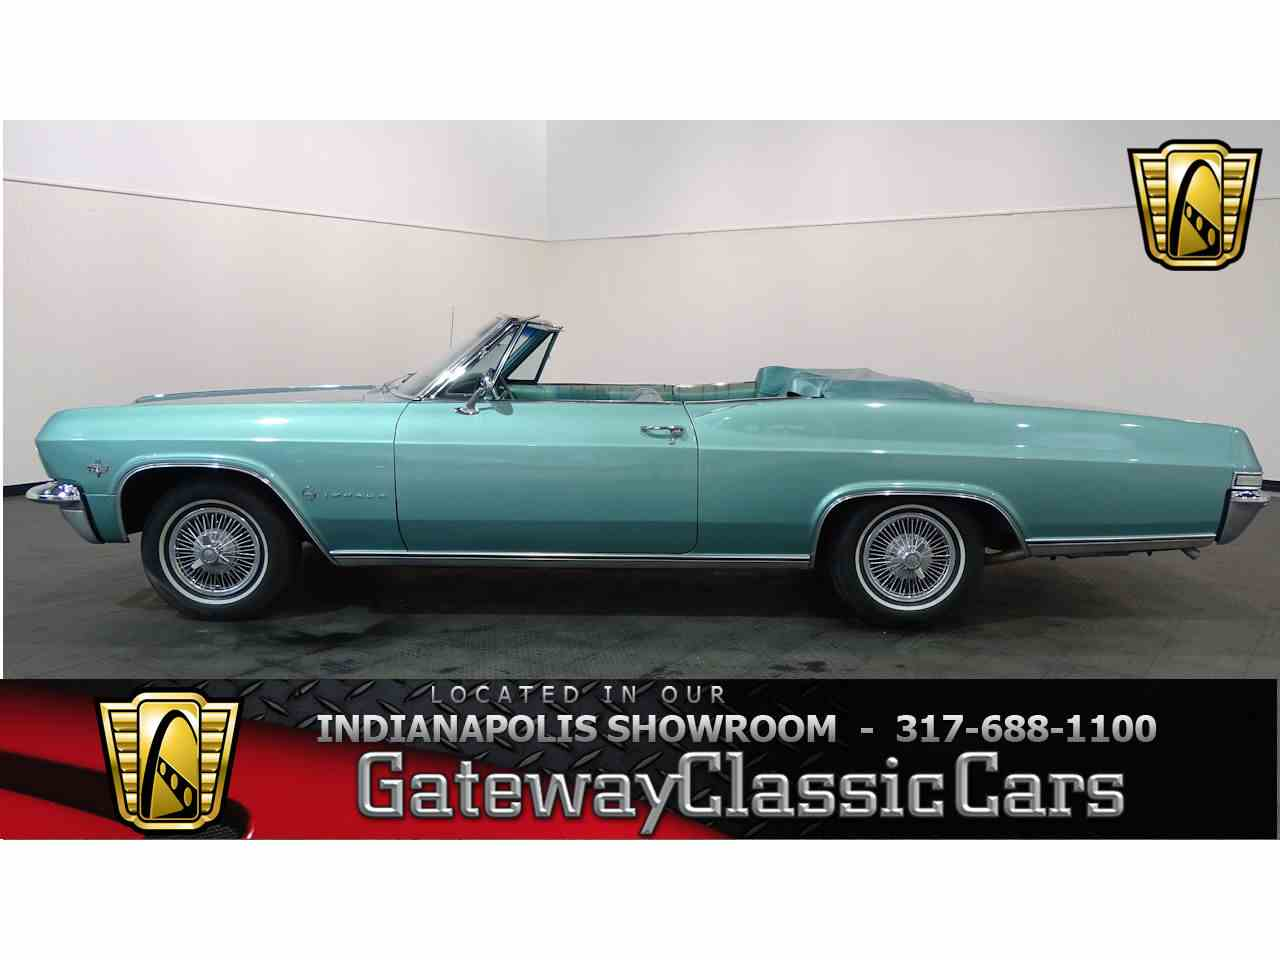 Large Picture of 1965 Chevrolet Impala located in Indiana - $34,995.00 - L5YV